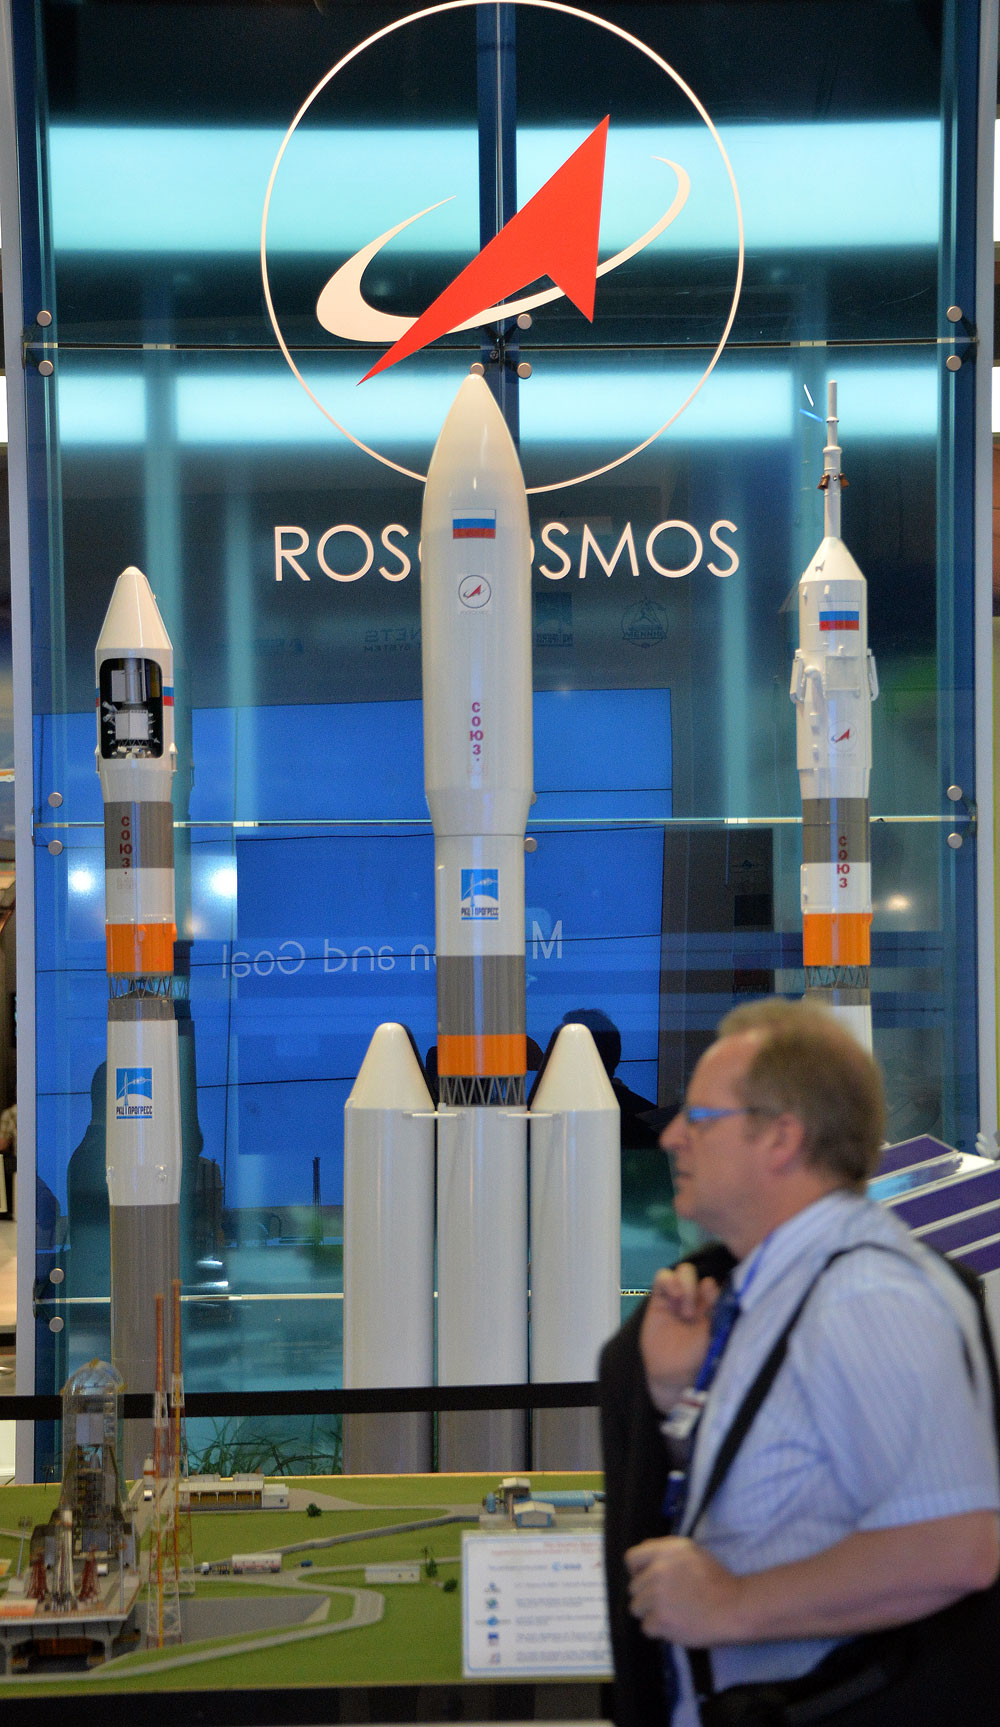 The showcase of the Federal Space Agency at Farnborough International Airshow